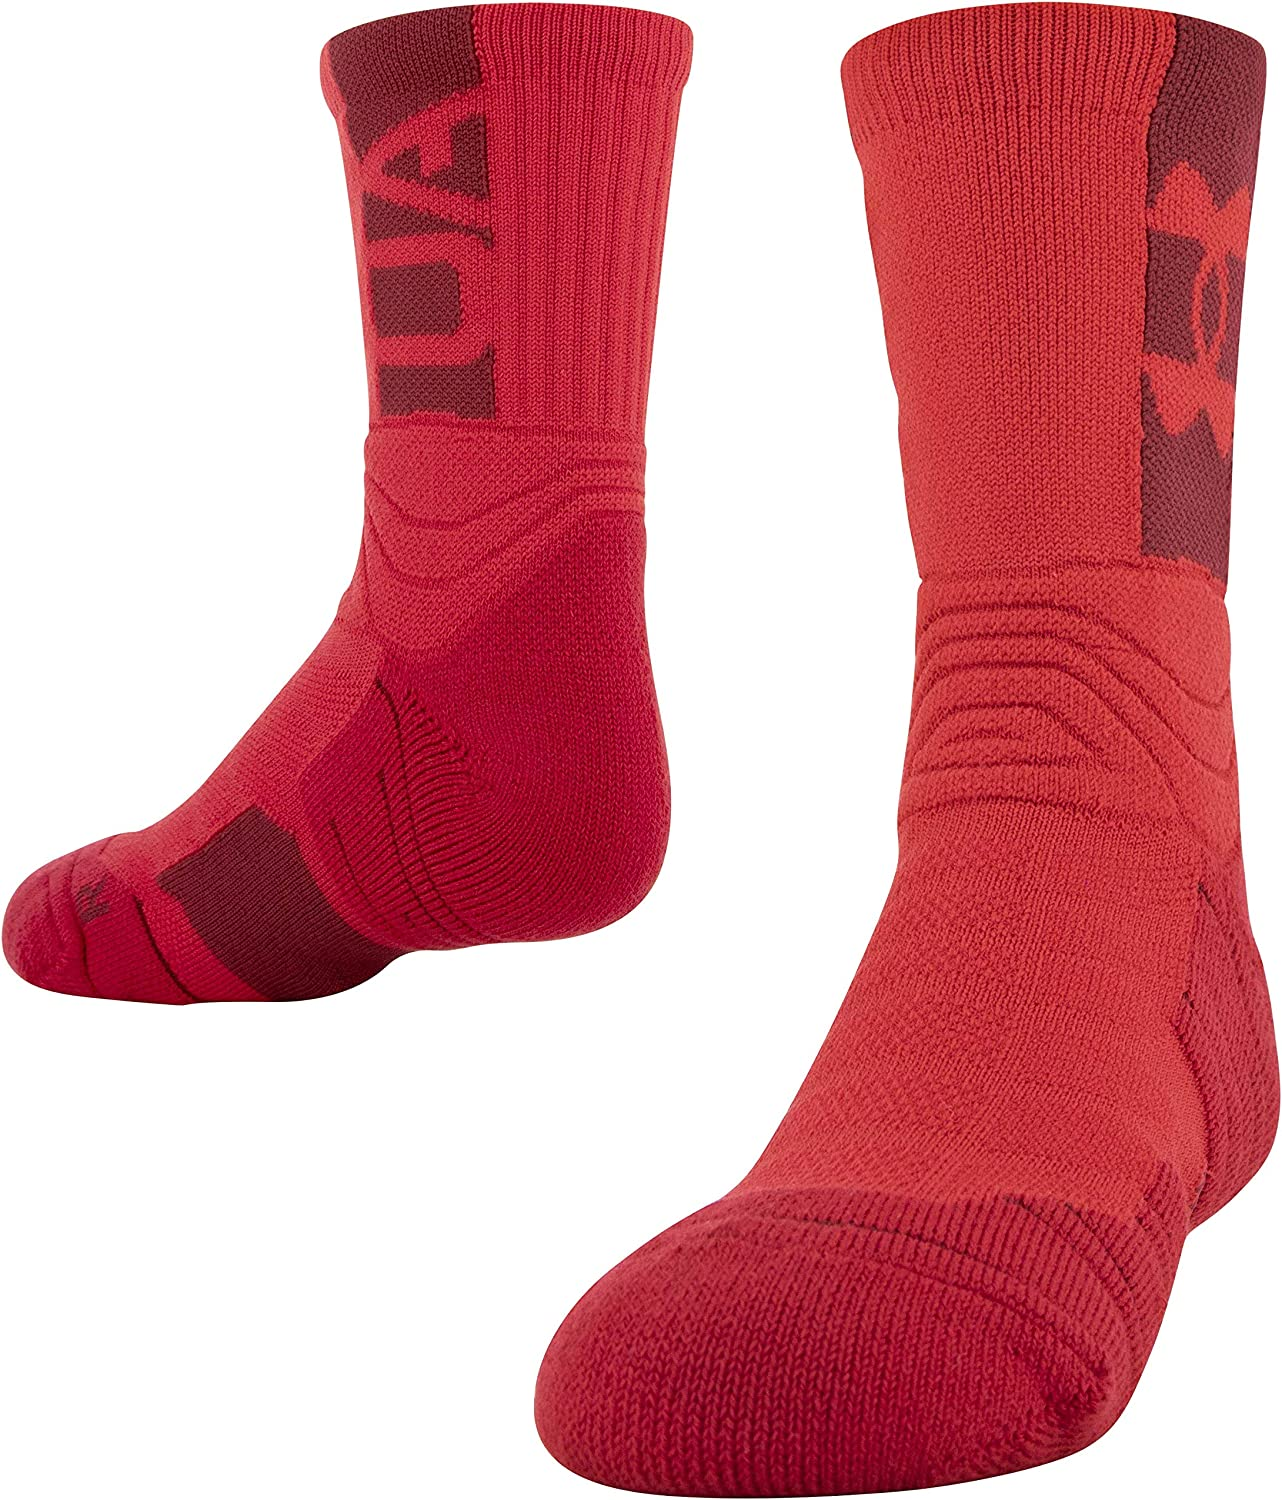 Under Armour Youth Playmaker Mid-Crew Socks, 1-Pair